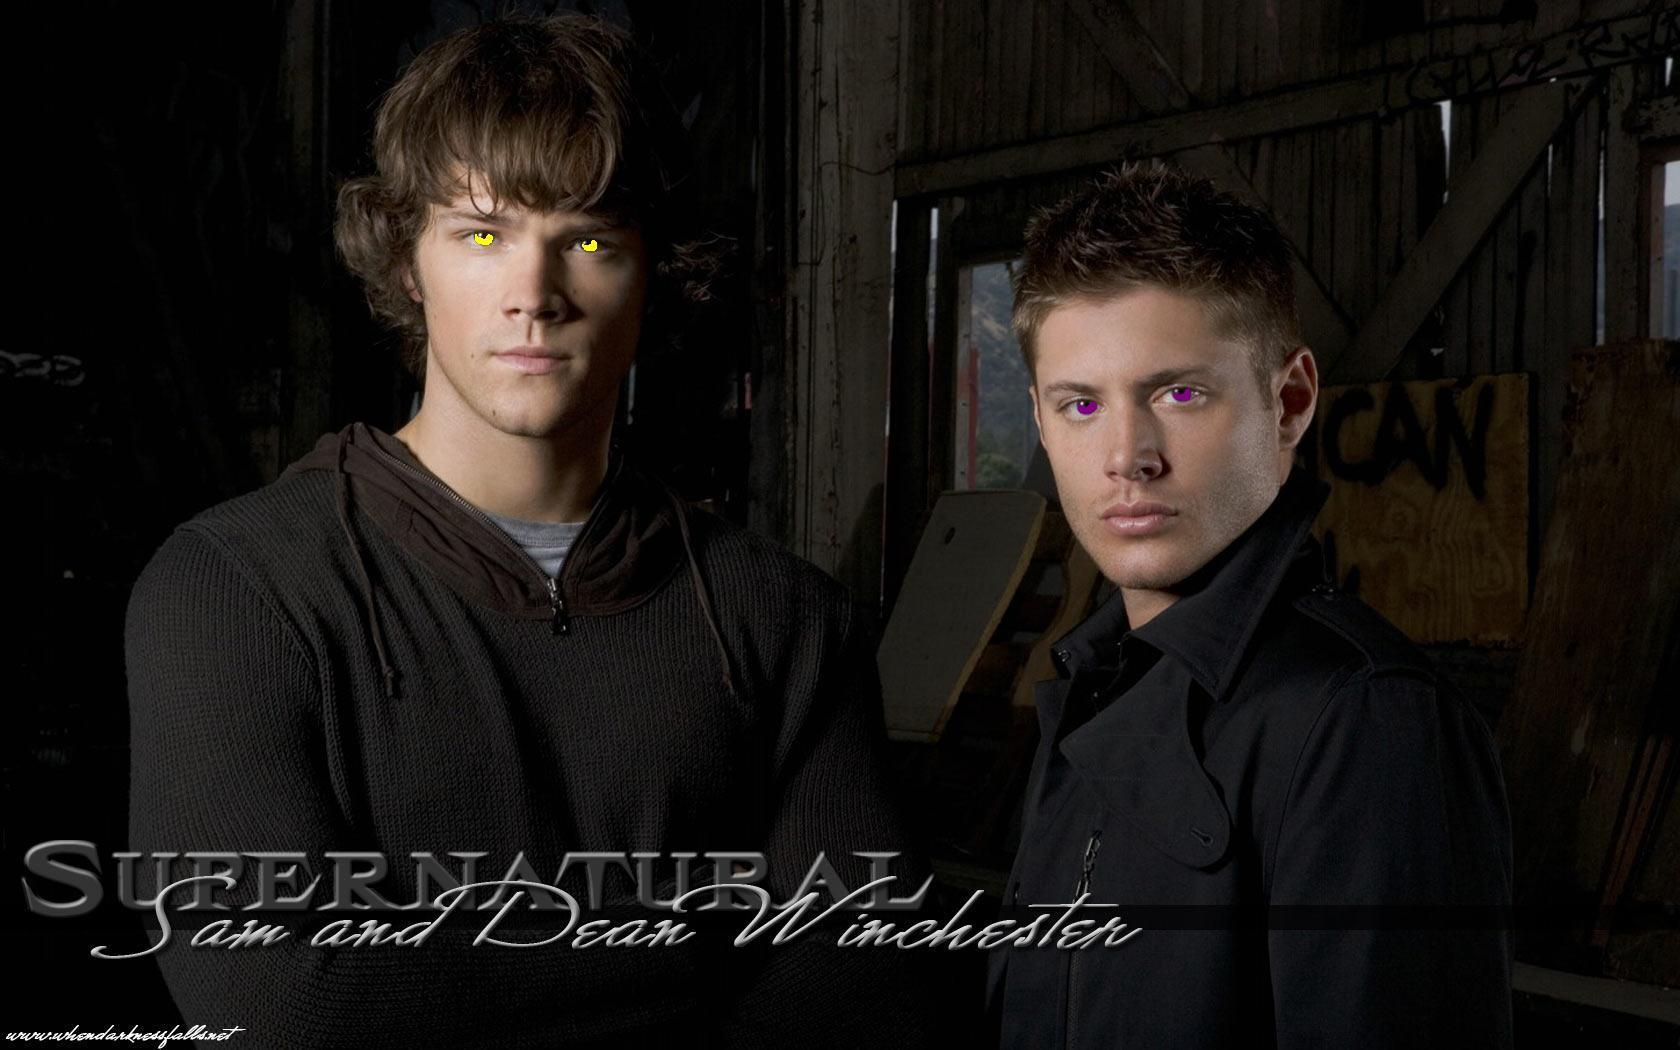 Demon Sam & Dean's eyes